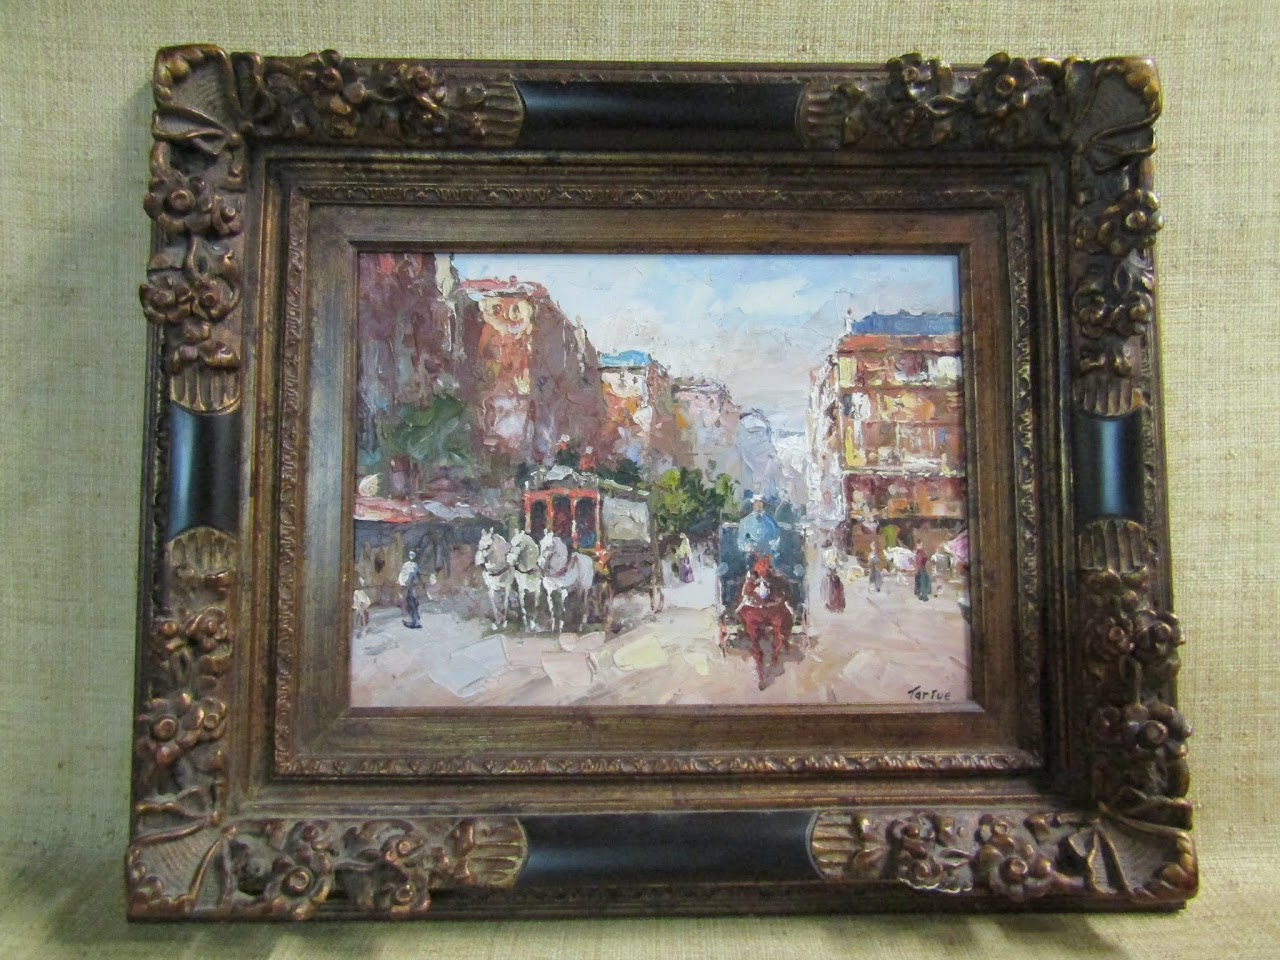 Signed City Square Painting by Tartue